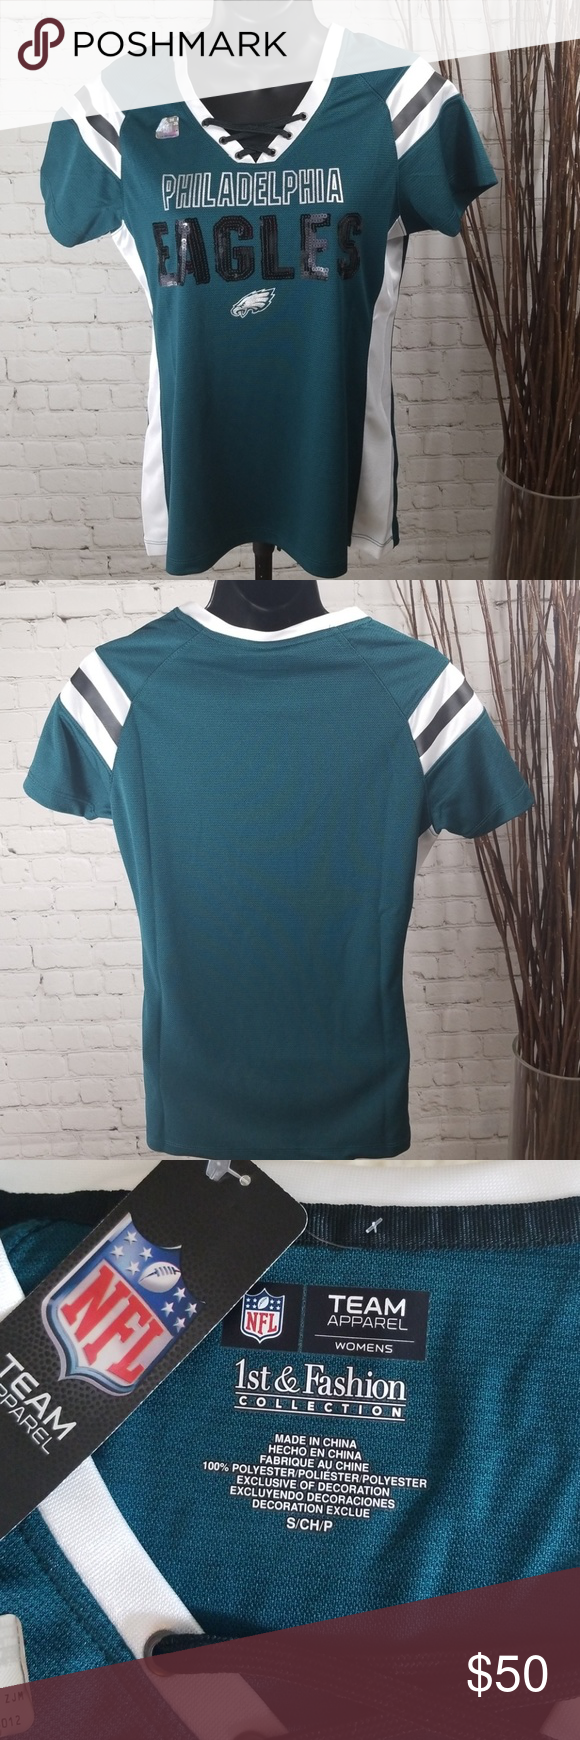 a4270011e490 NFL Apparel Philadelphia Eagles Jersey w/ Sequins Are you ready for some  football?!? Celebrate the Superbowl Champs this season with a NFL Apparel  Eagles ...